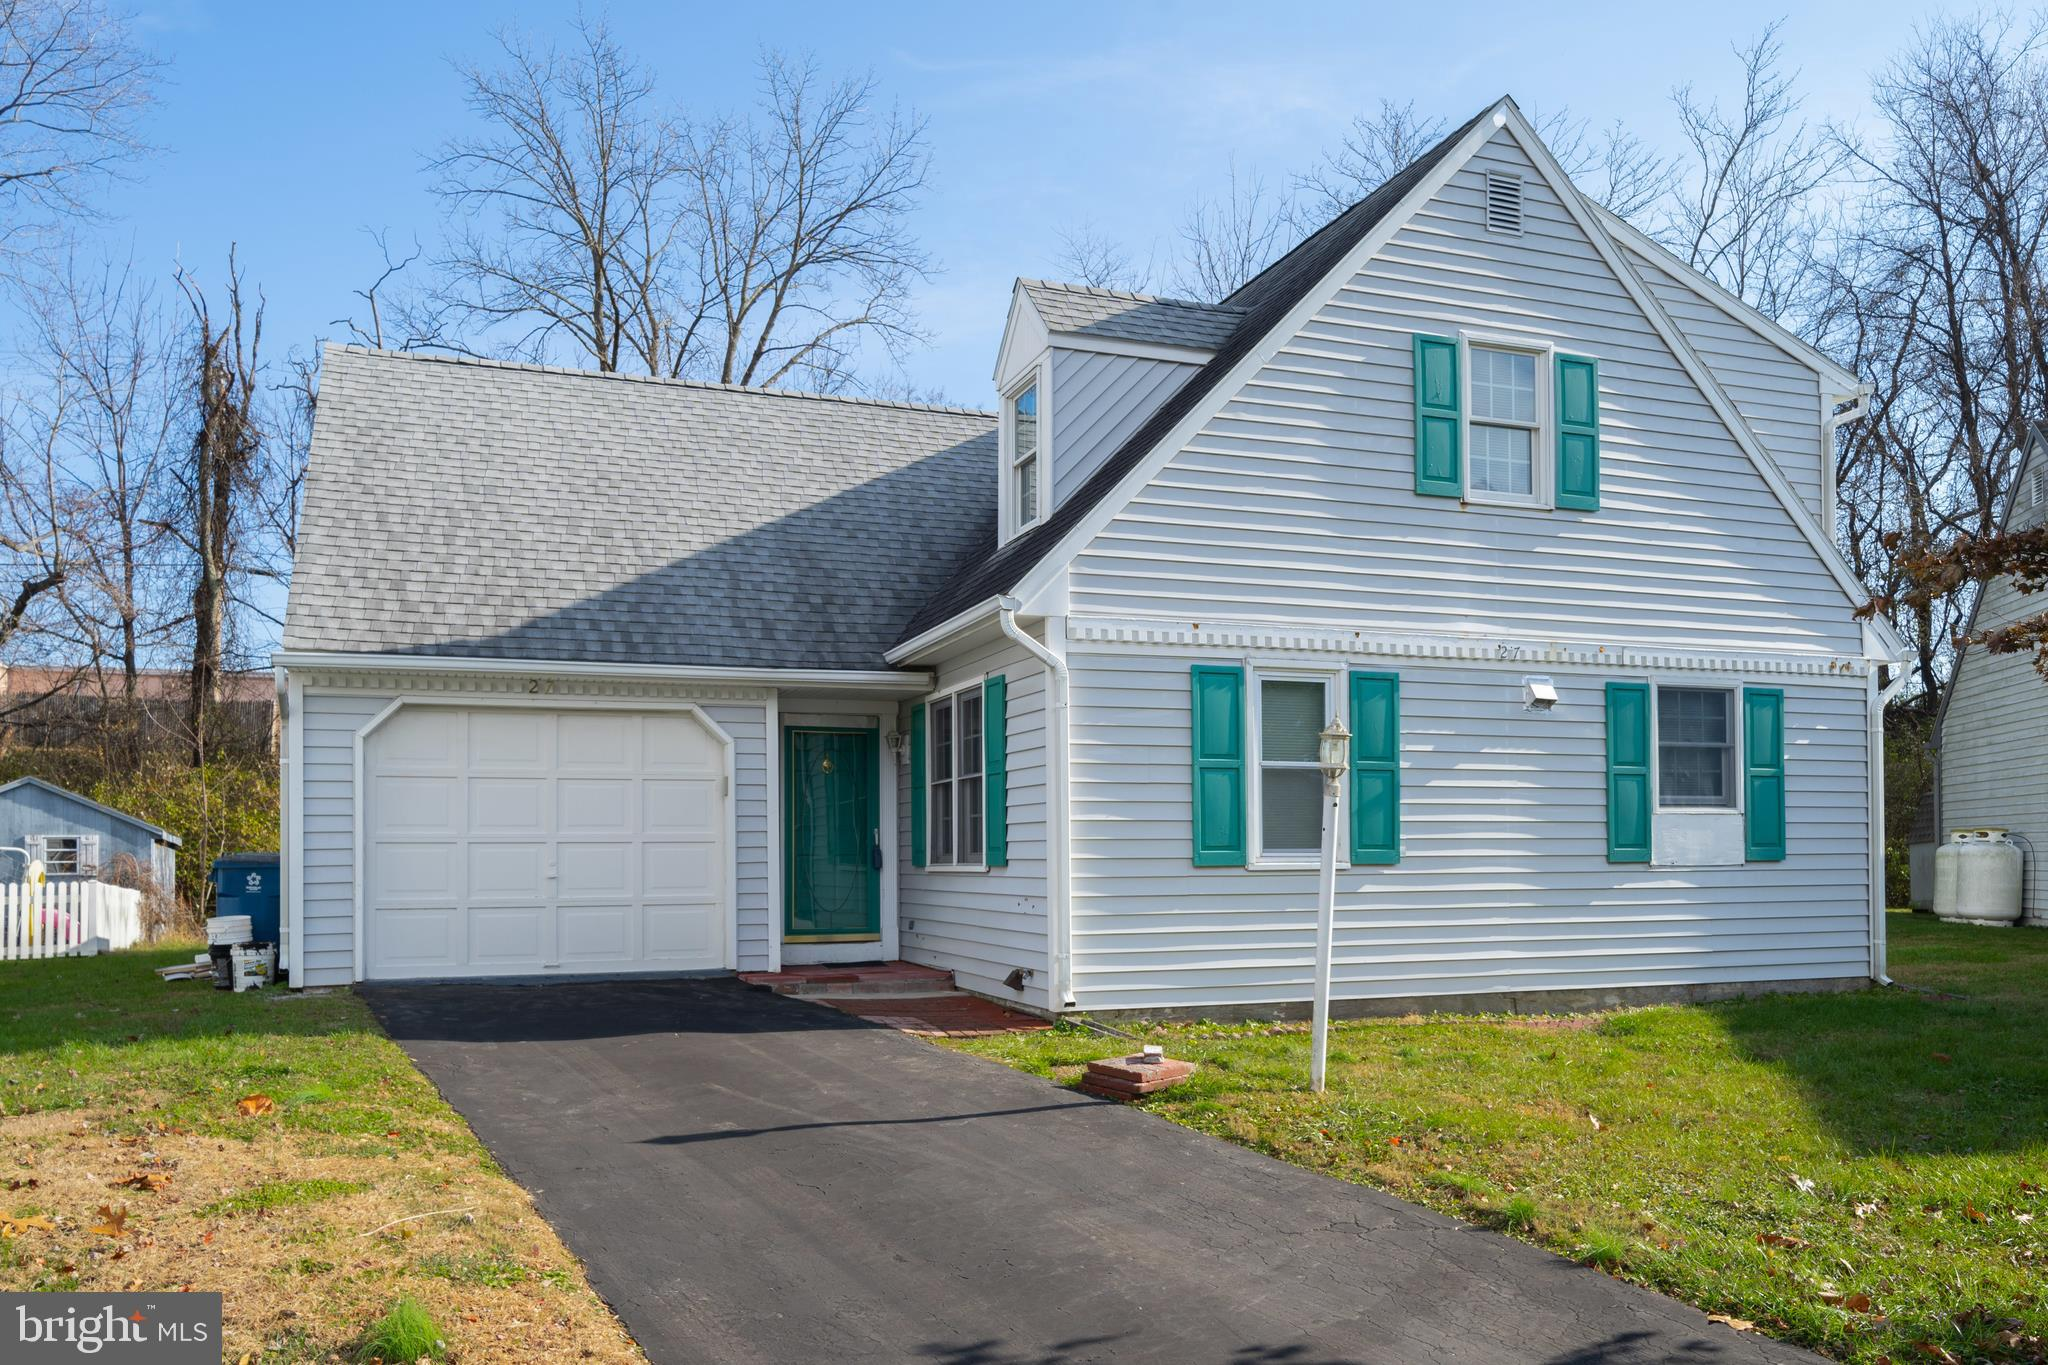 27 WETHERBURN DRIVE, DOWNINGTOWN, PA 19335